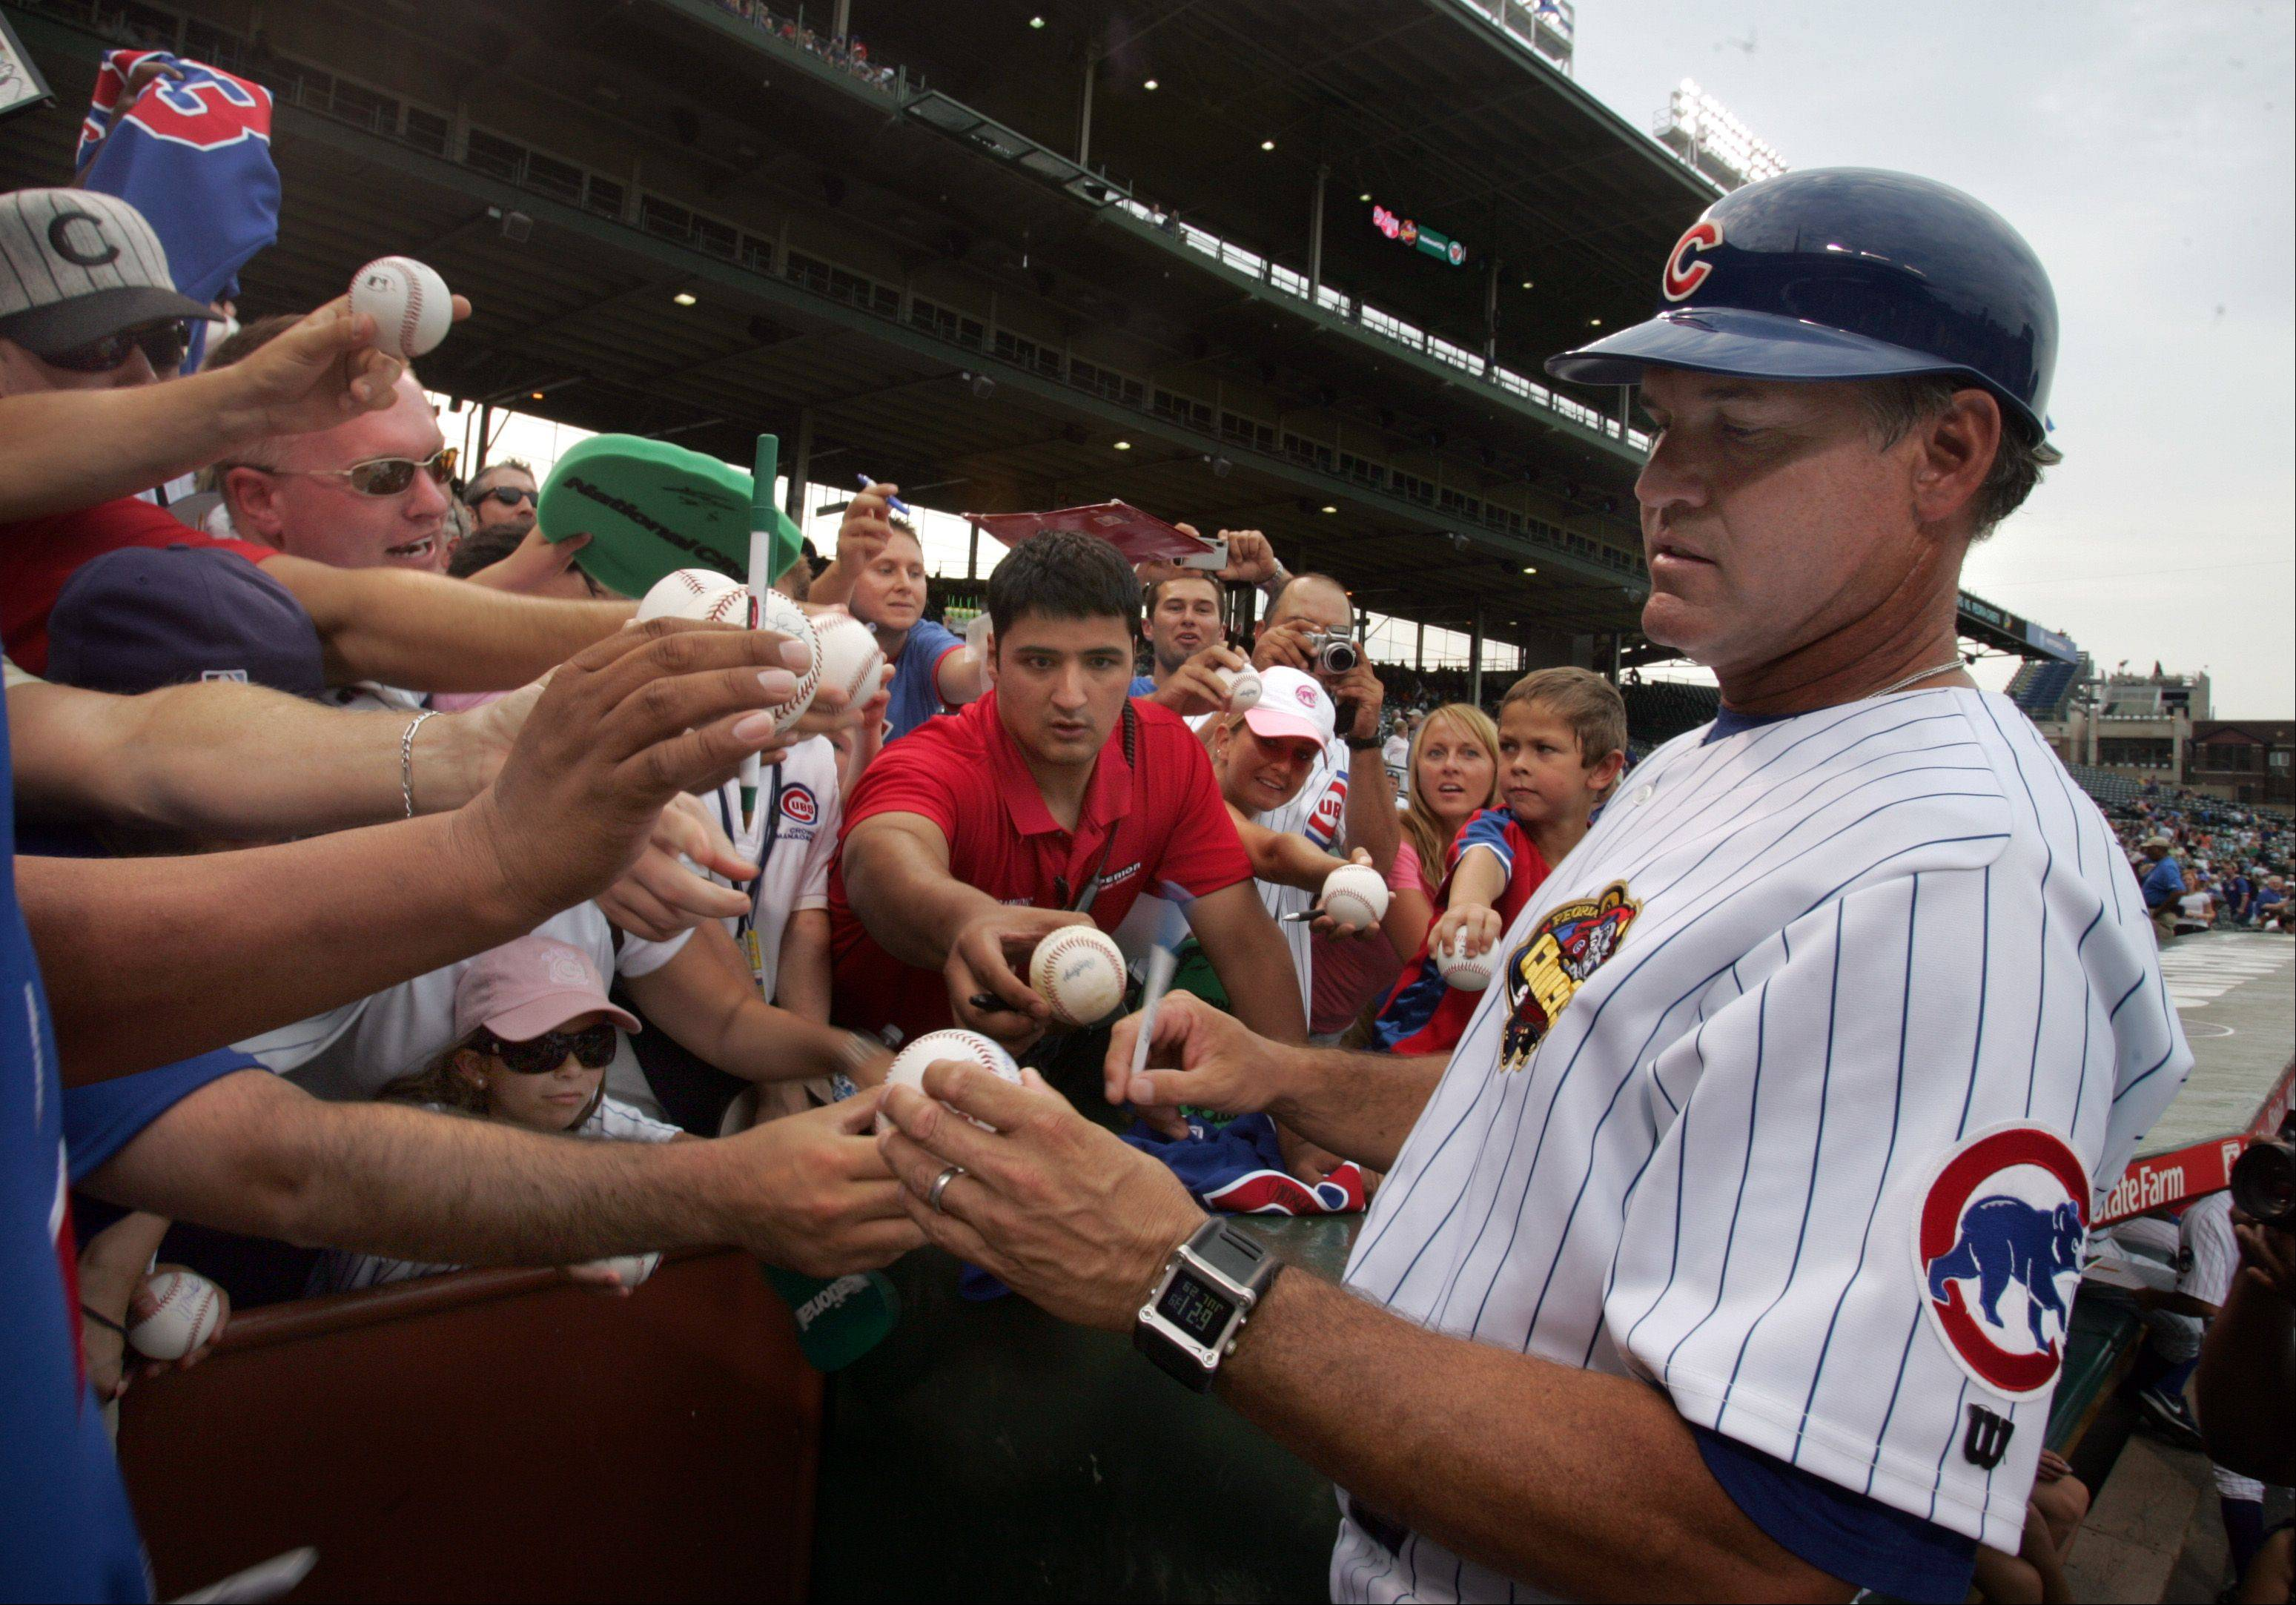 Ryne Sandberg former Chicago Cub star and hall of fame player and now manager of the Peoria Chefs signs autographs at Wrigley Field. His team is playing against Kane County Cougars.